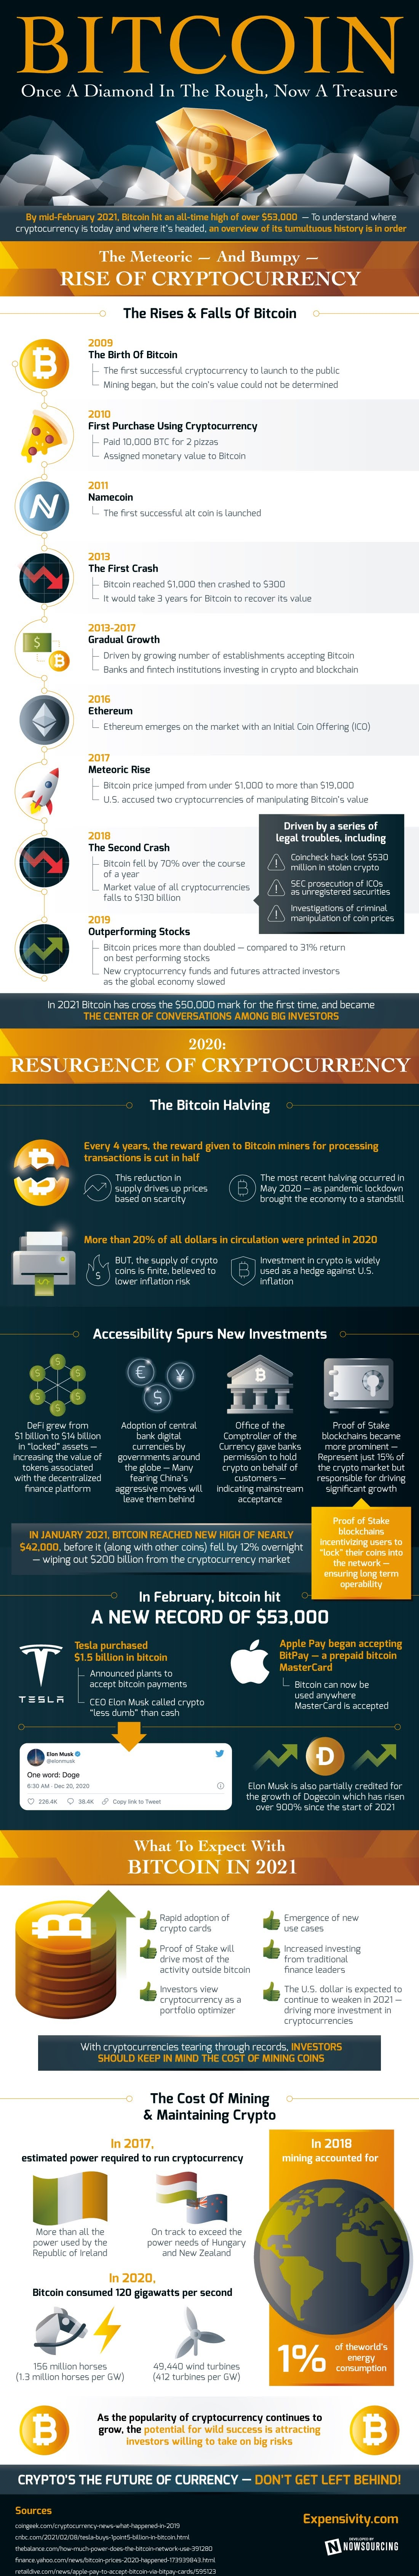 Bitcoin - The Currency of the Future